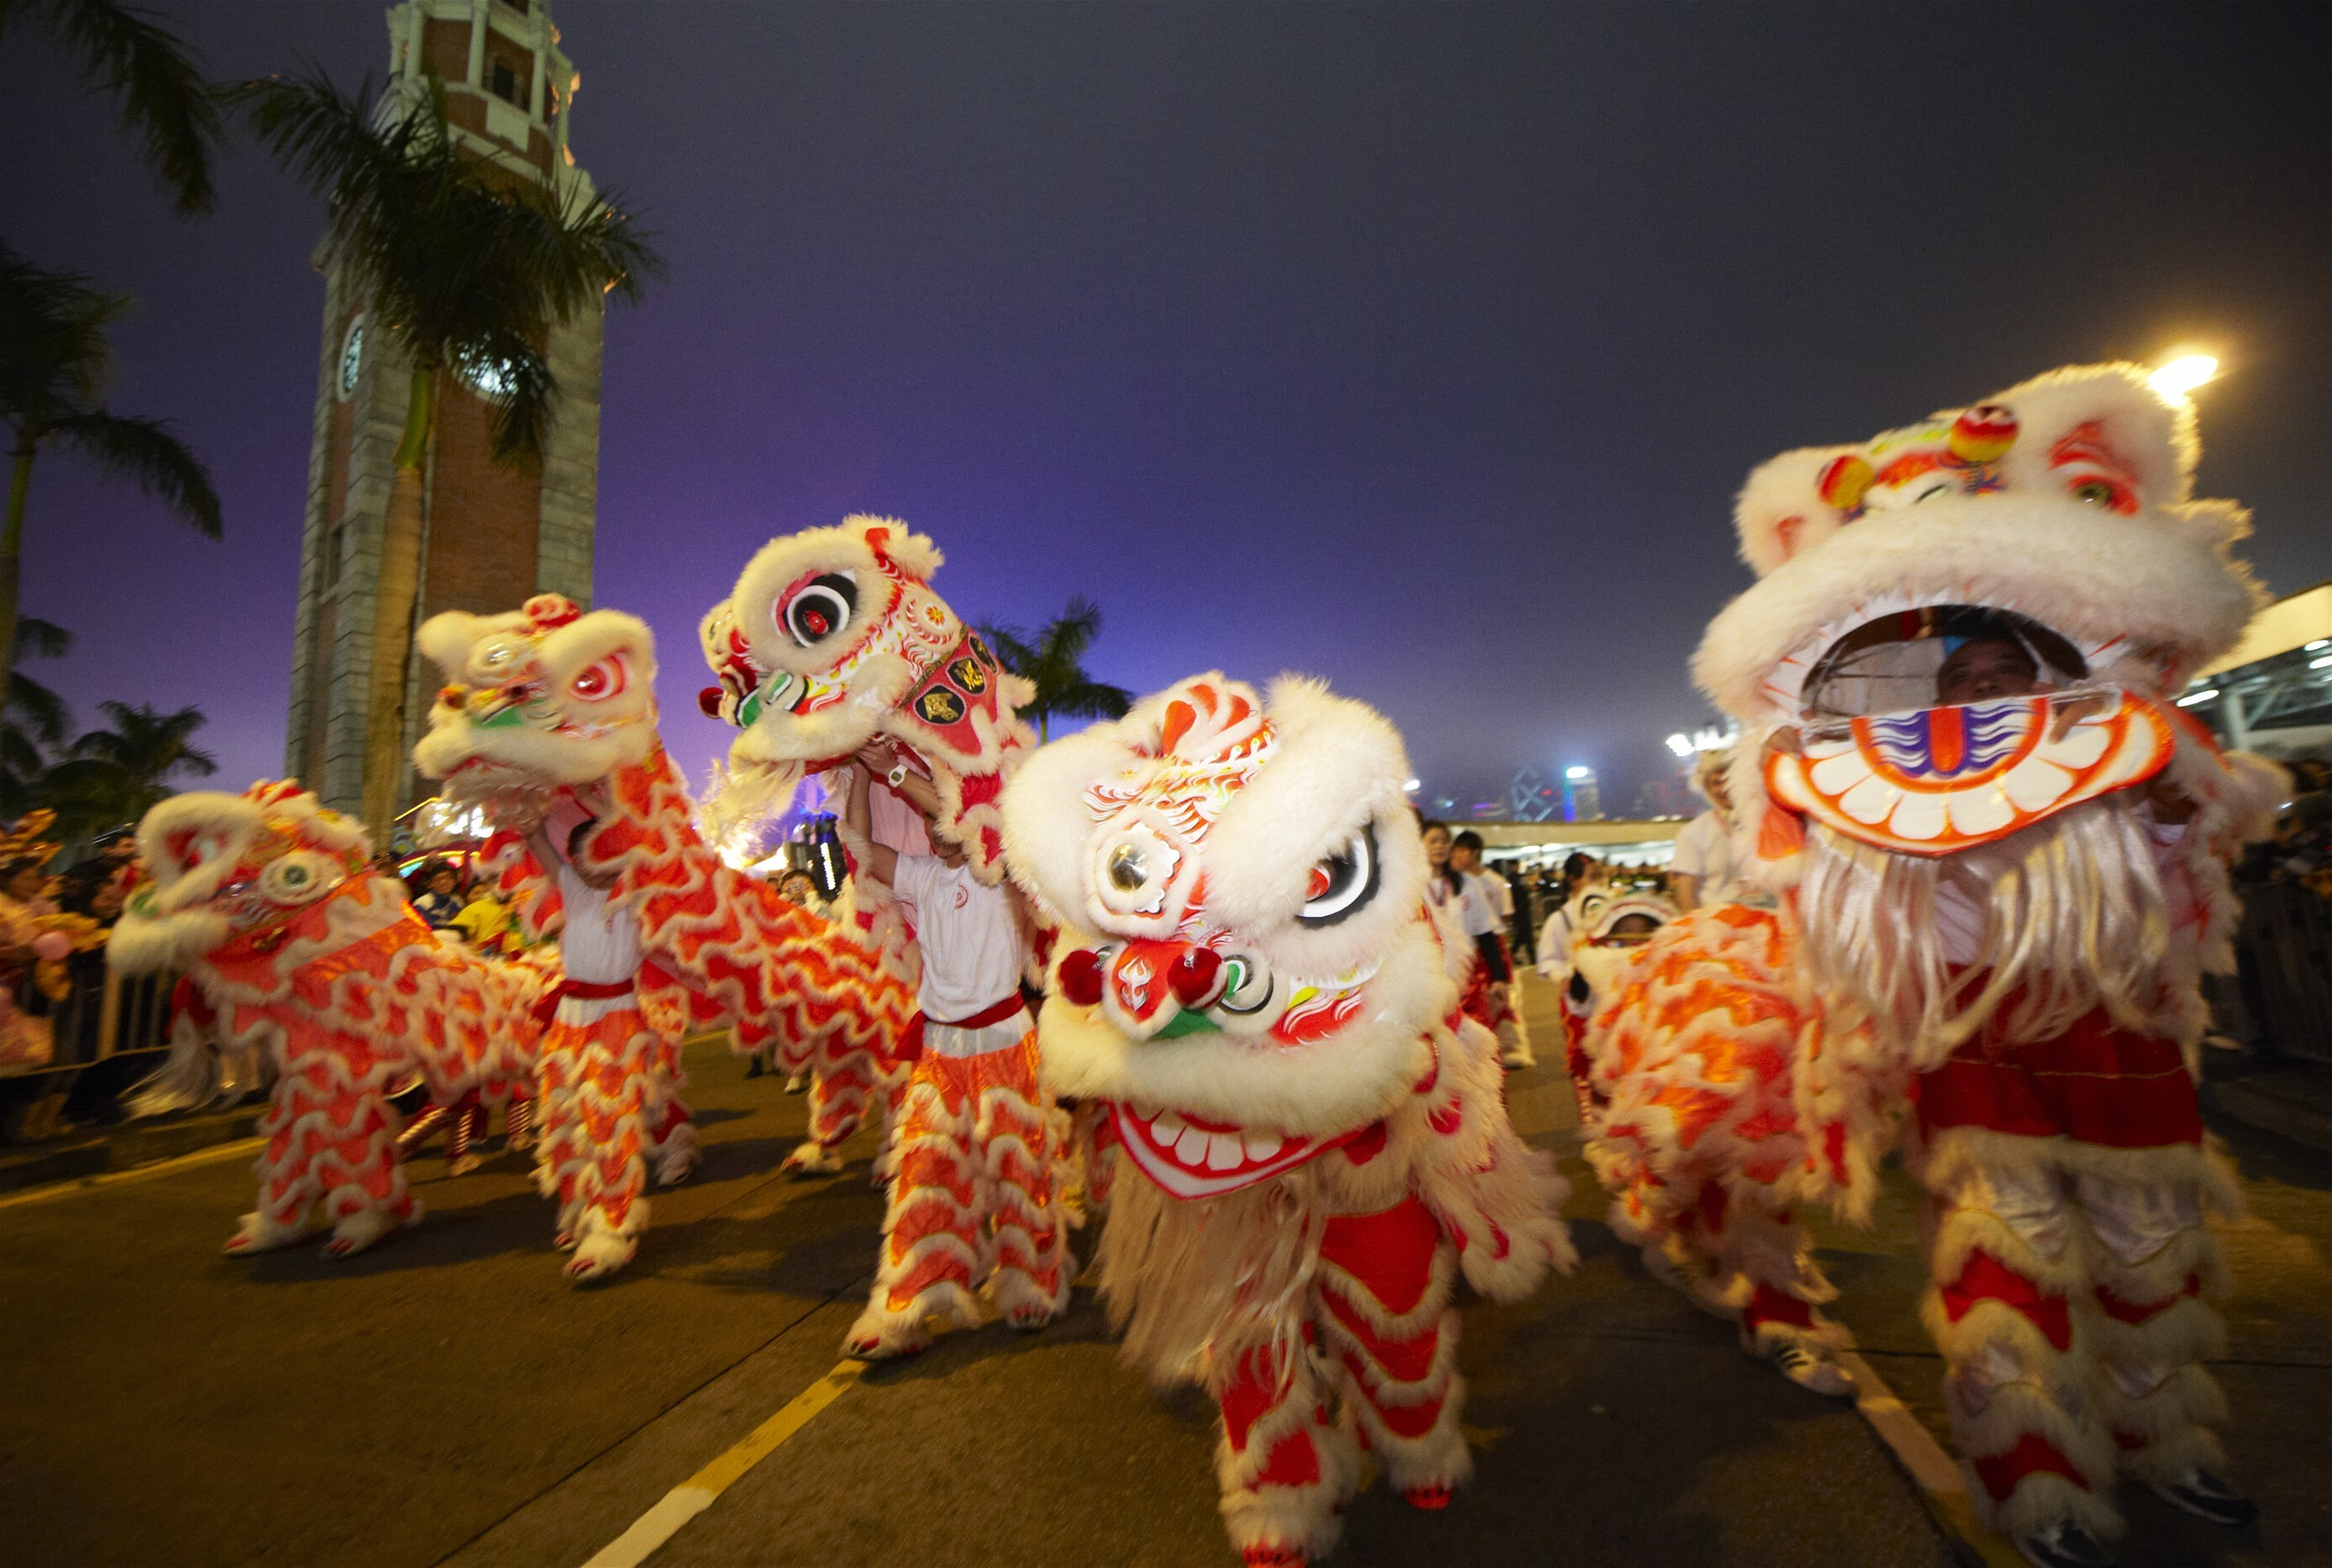 Guide to Chinese New Year etiquette